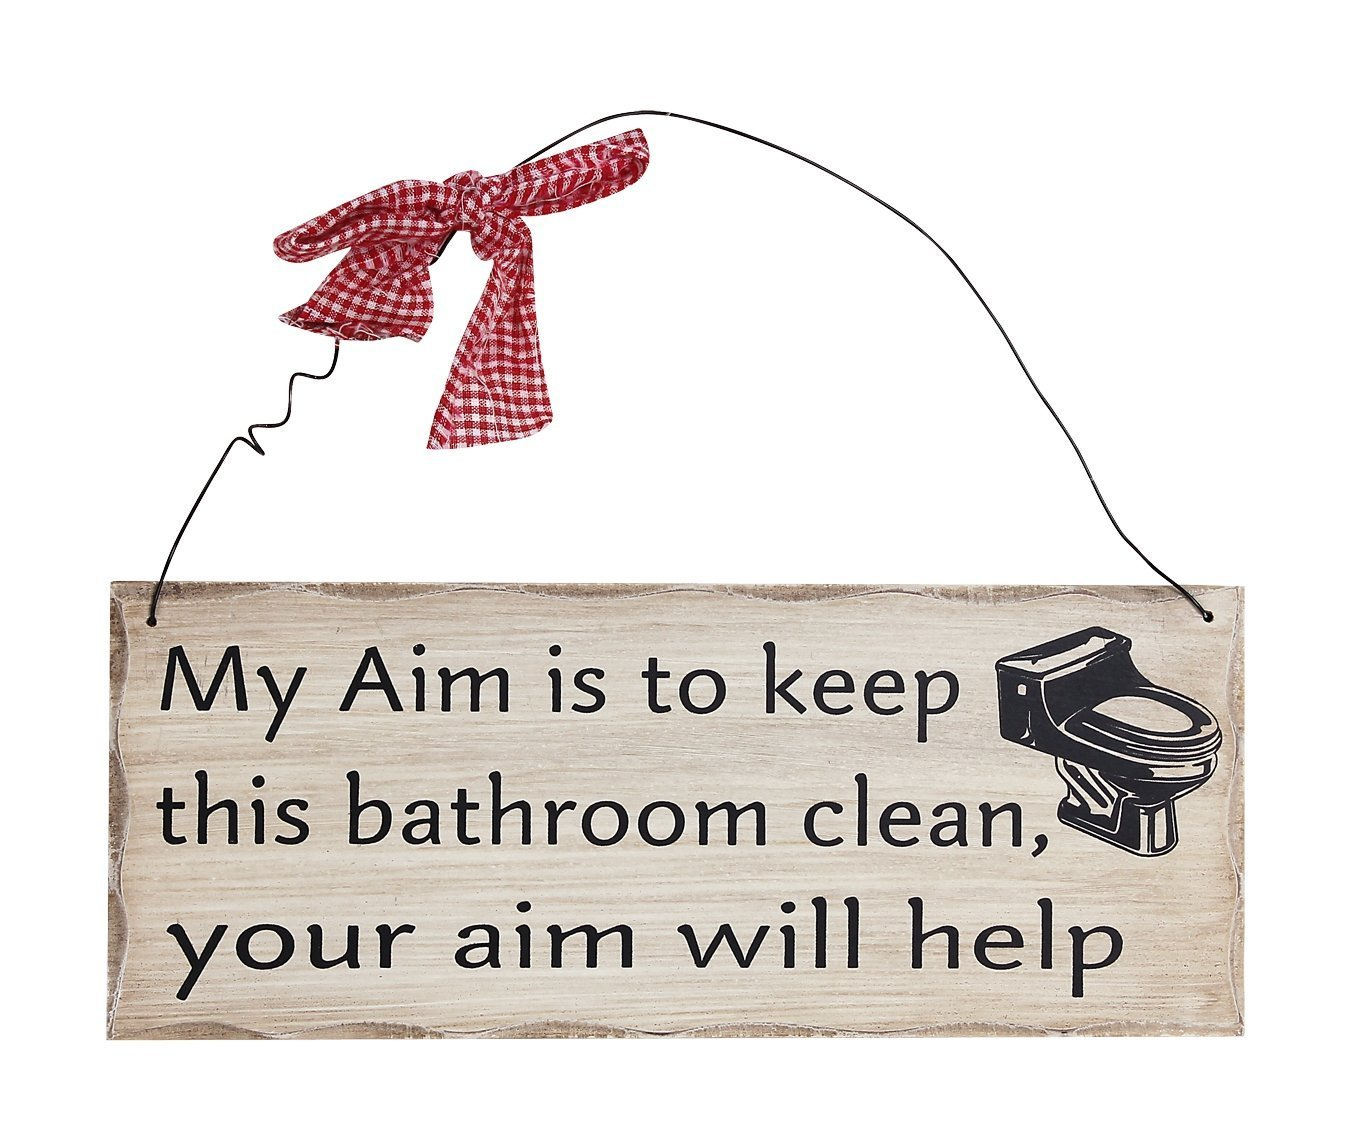 Home Acent My Aim Is To Keep This Bathroom Clean Your Aim Will Help Wooden Sign Decor 10 X4